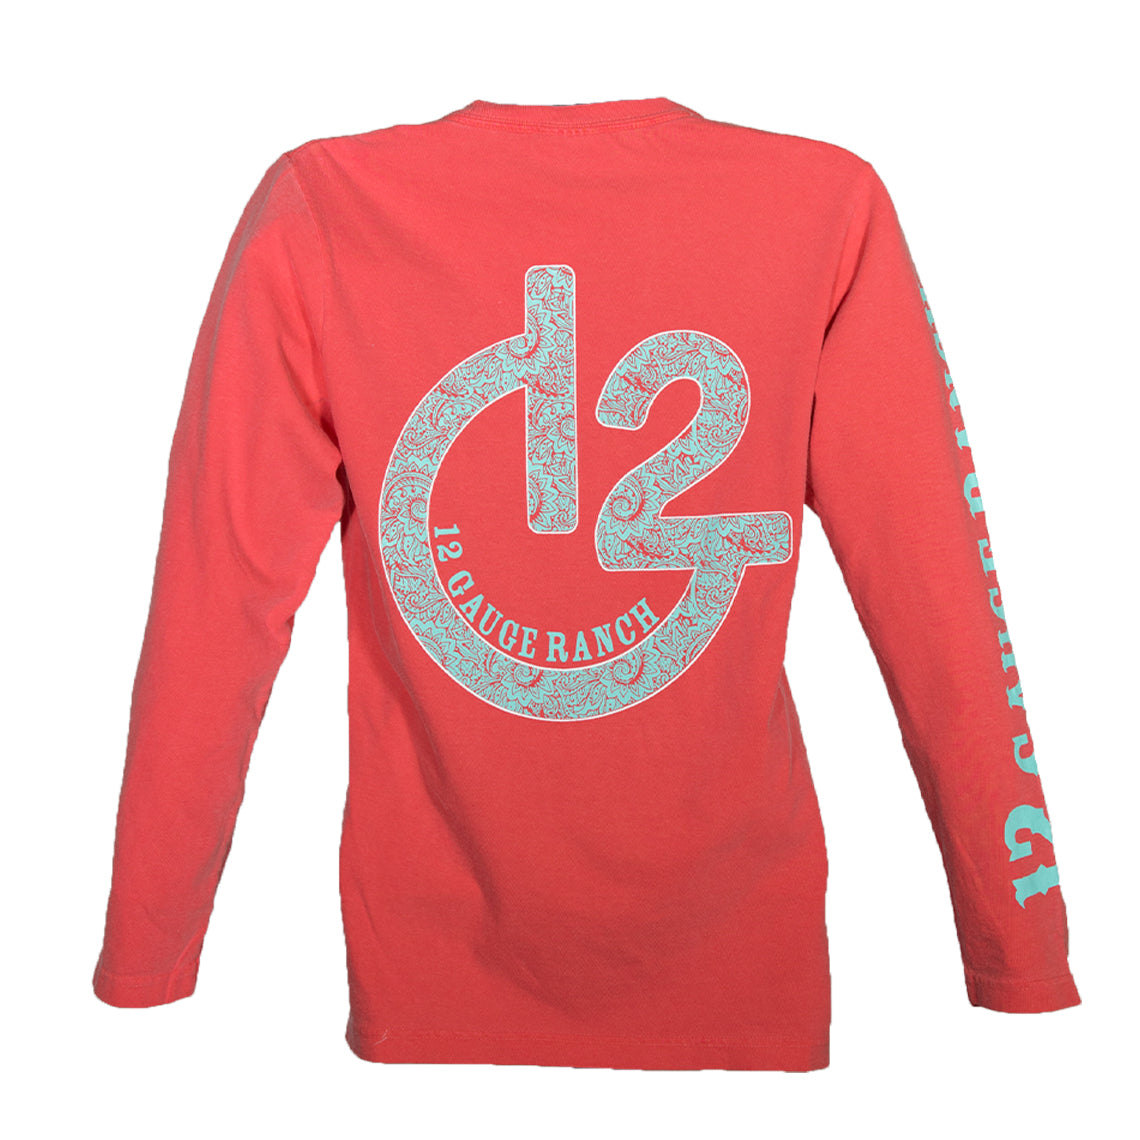 Paisley G12 Watermelon Long Sleeve Shirt, Apparel, 12 Gauge Ranch, 12 Gauge Ranch 12 Gauge Ranch